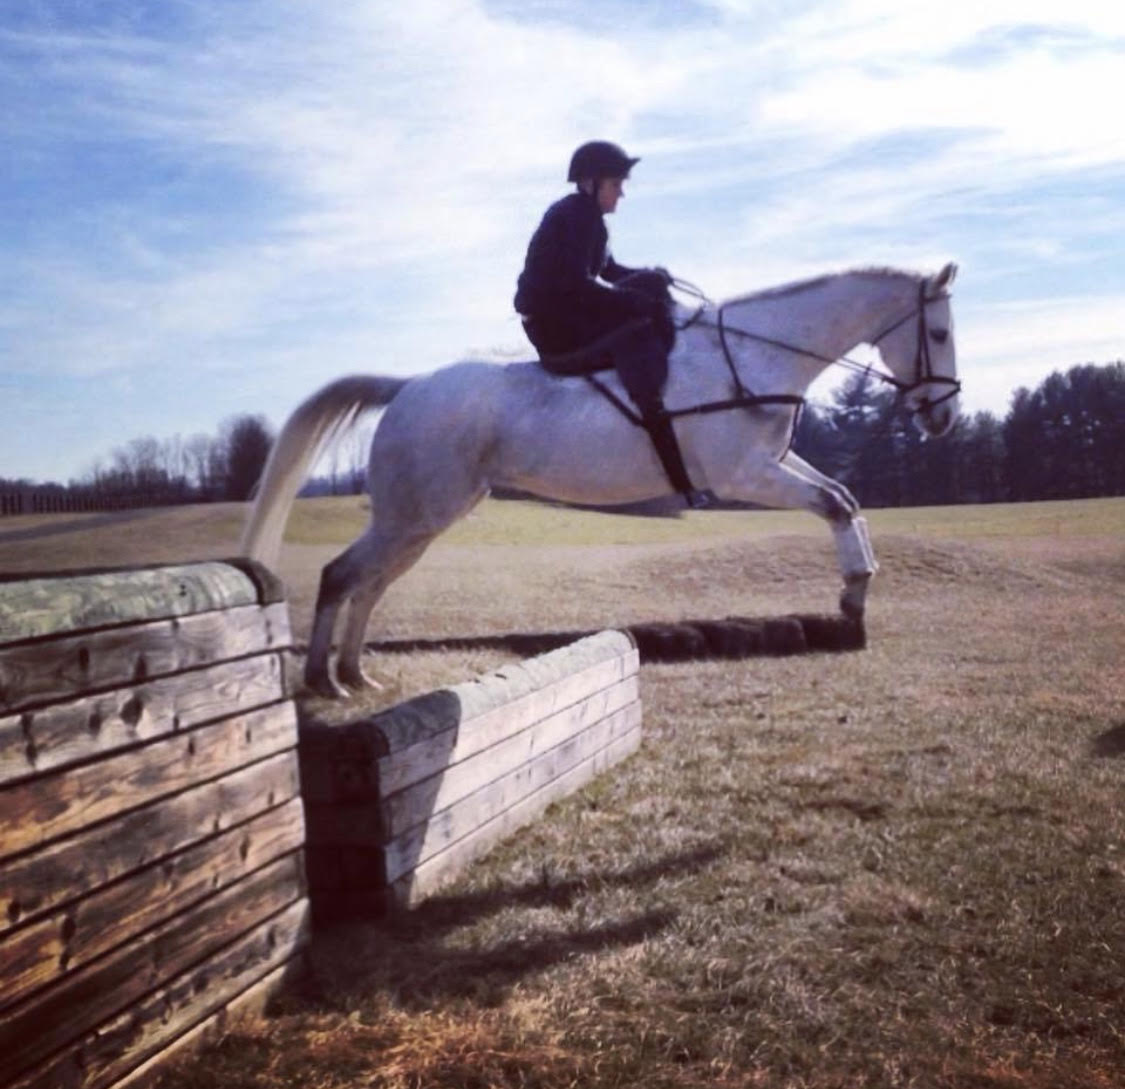 "Rider : Sarah Hansard   Hometown : Charles Town, WV   Horse : ""Superstar"" (Hereosaurus Rex, barn name Hero) -- 7 yr old, gray, OTTB gelding (Heres Zealous x Merrill-Forest Camp), owned by Cherry Blossom Farm. Hero raced on the flat until late 2016, and then was re-schooled and he has been foxhunting the 2017-2018 season.   Sarah's Background : I am a laboratory technician. I started sidesaddle with Devon Zebrovious in the fall of 2016, and have been hooked ever since!   What is your racing experience, side saddle or otherwise? : I raced aside last year on the flat, riding King of Hearts, and we were the SSCF Reserve Champion Flat race horse. I cannot wait for this year!   Do you fox hunt? Do you hunt aside? : I am a member of New Market-Middletown Valley Hunt (MD) and have hunted at various other hunts as well, both aside and astride.   What got you interested in racing aside? : Devon Zebrovious and the pictures of all the lovely ladies.   What are your side saddle goals for 2018? : To help promote the SSCF and get more people interested and involved. The foundation has given me every opportunity to learn, grow and succeed and I want others to experience how much fun it is!"